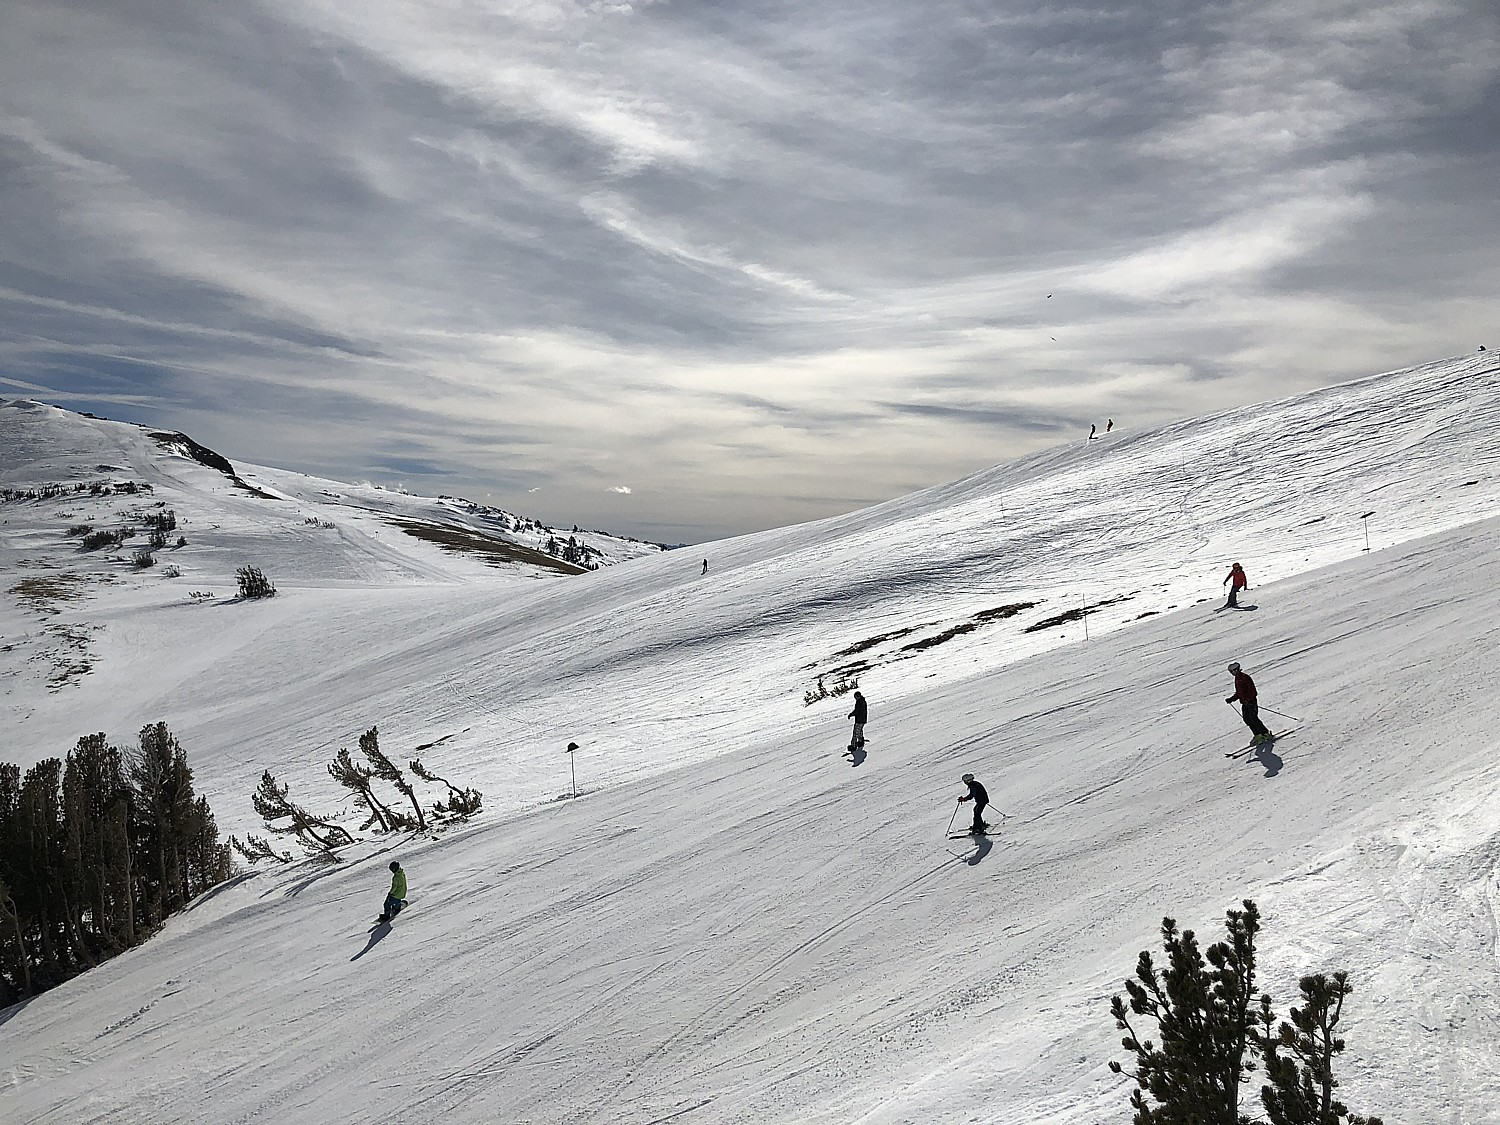 skiing kirkwood: it's all about the mountain – going places, far & near